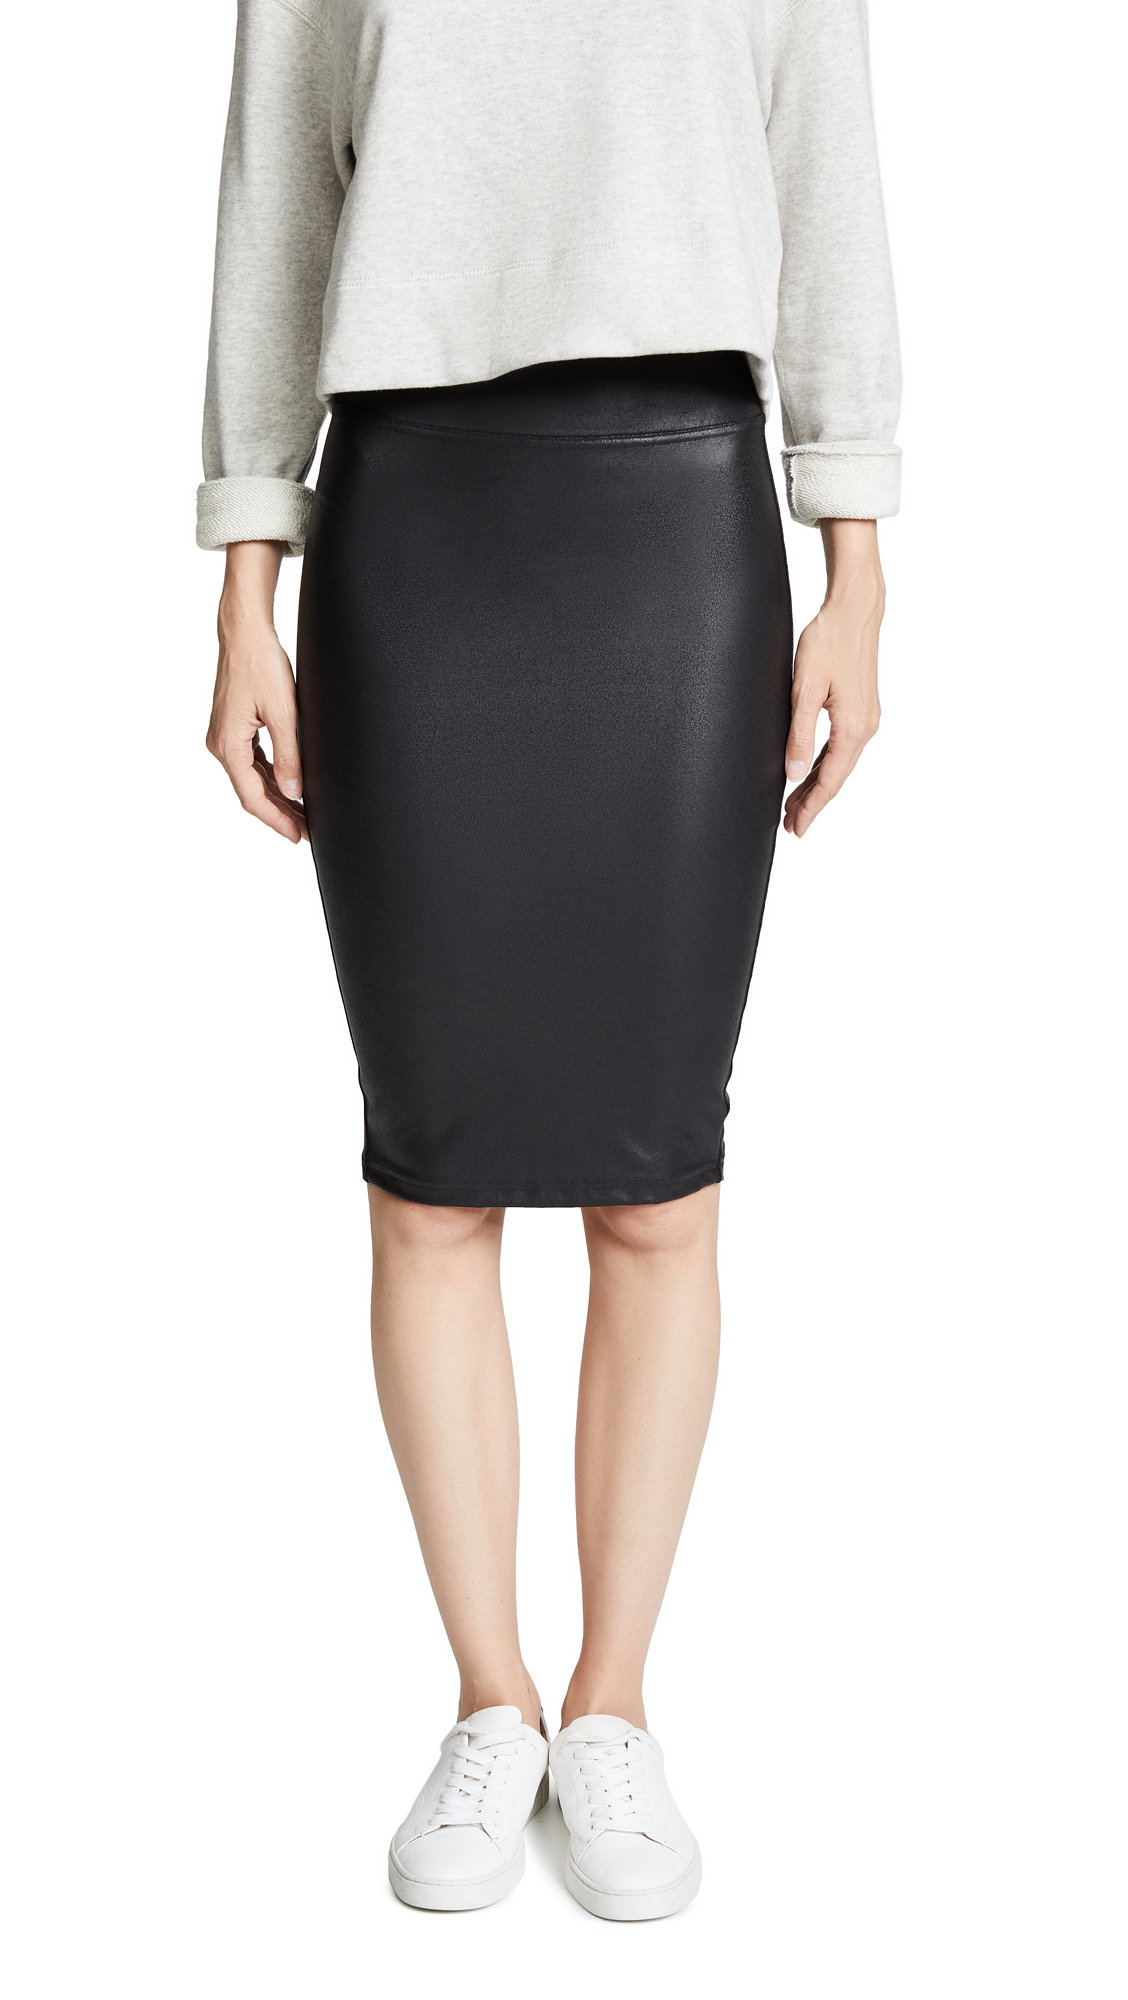 SPANX Faux Leather Pencil Skirt In Very Black